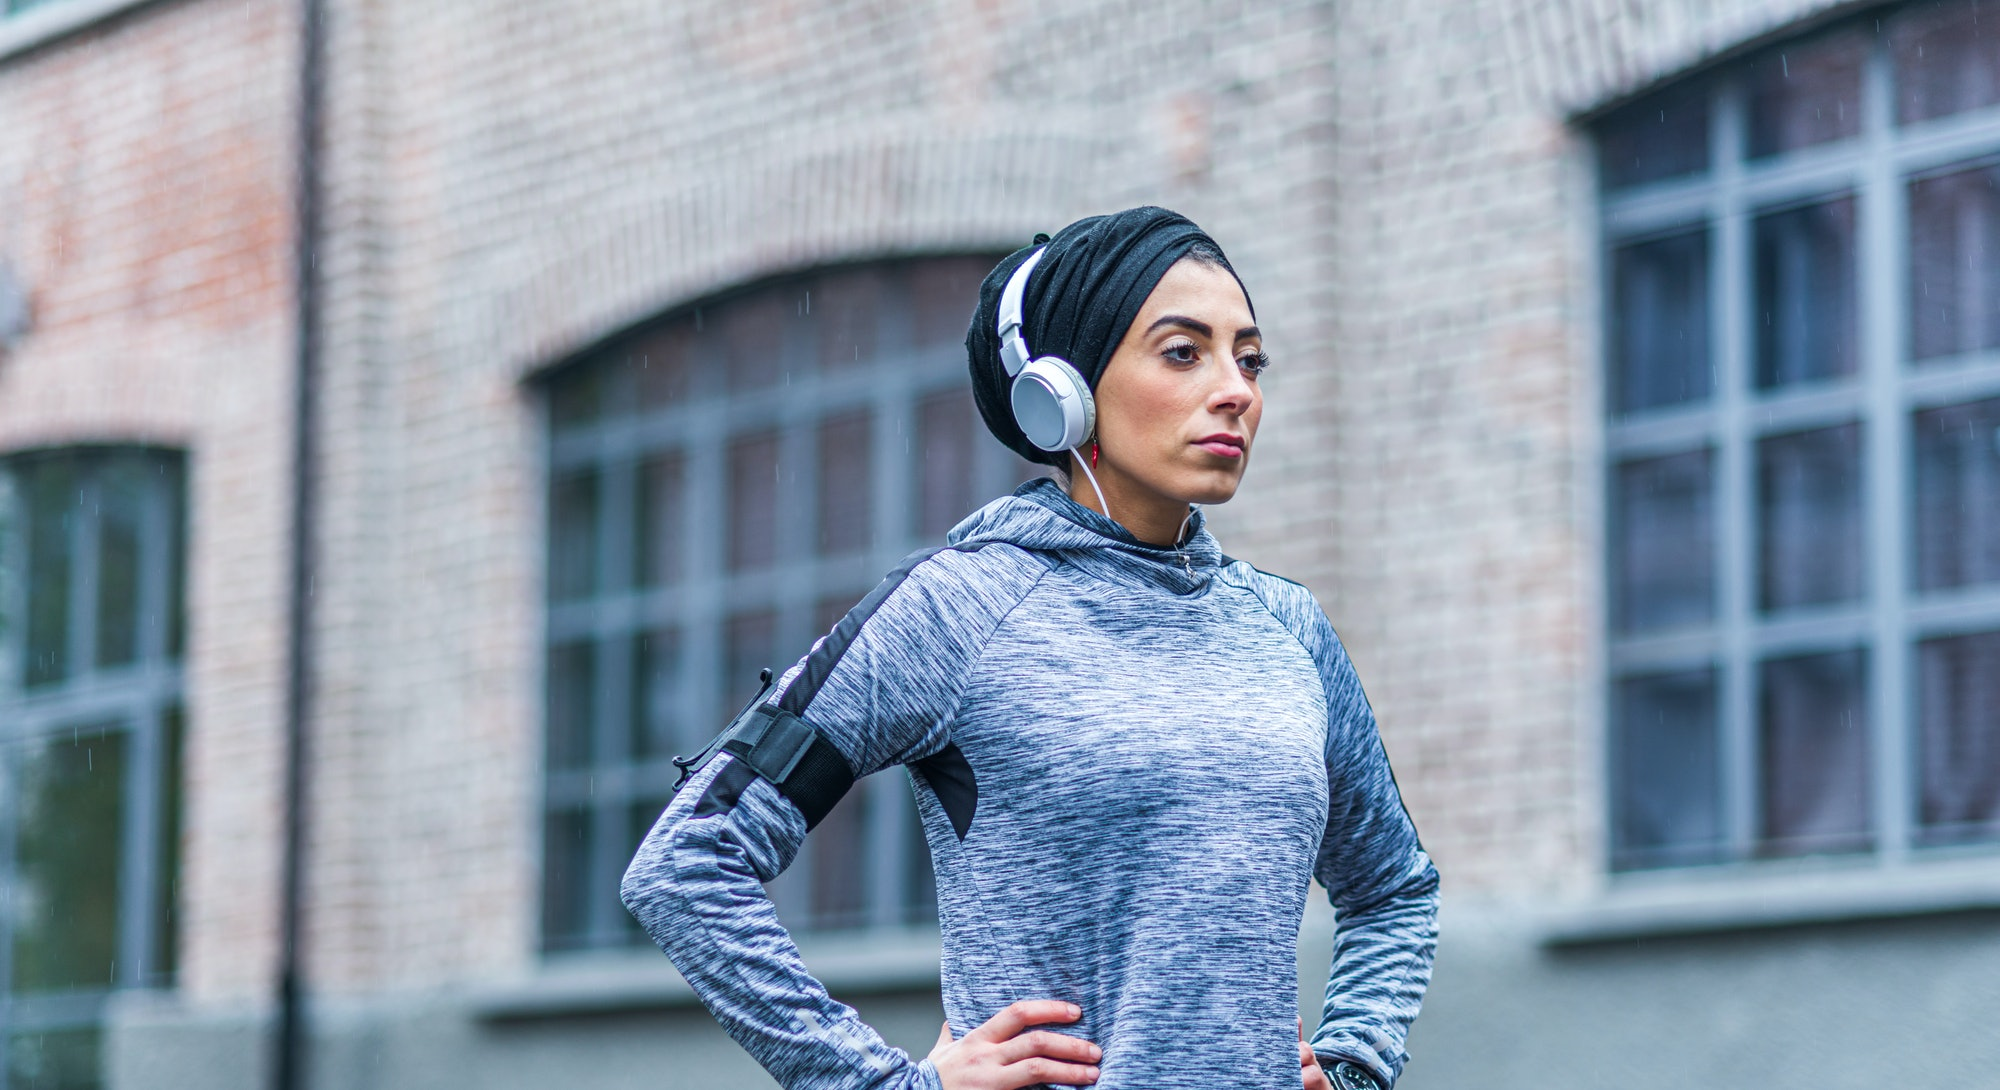 A woman in hijab rests during a run. Strava's 2020 year in sport data shows how much women worked out in 2020 compared to men.